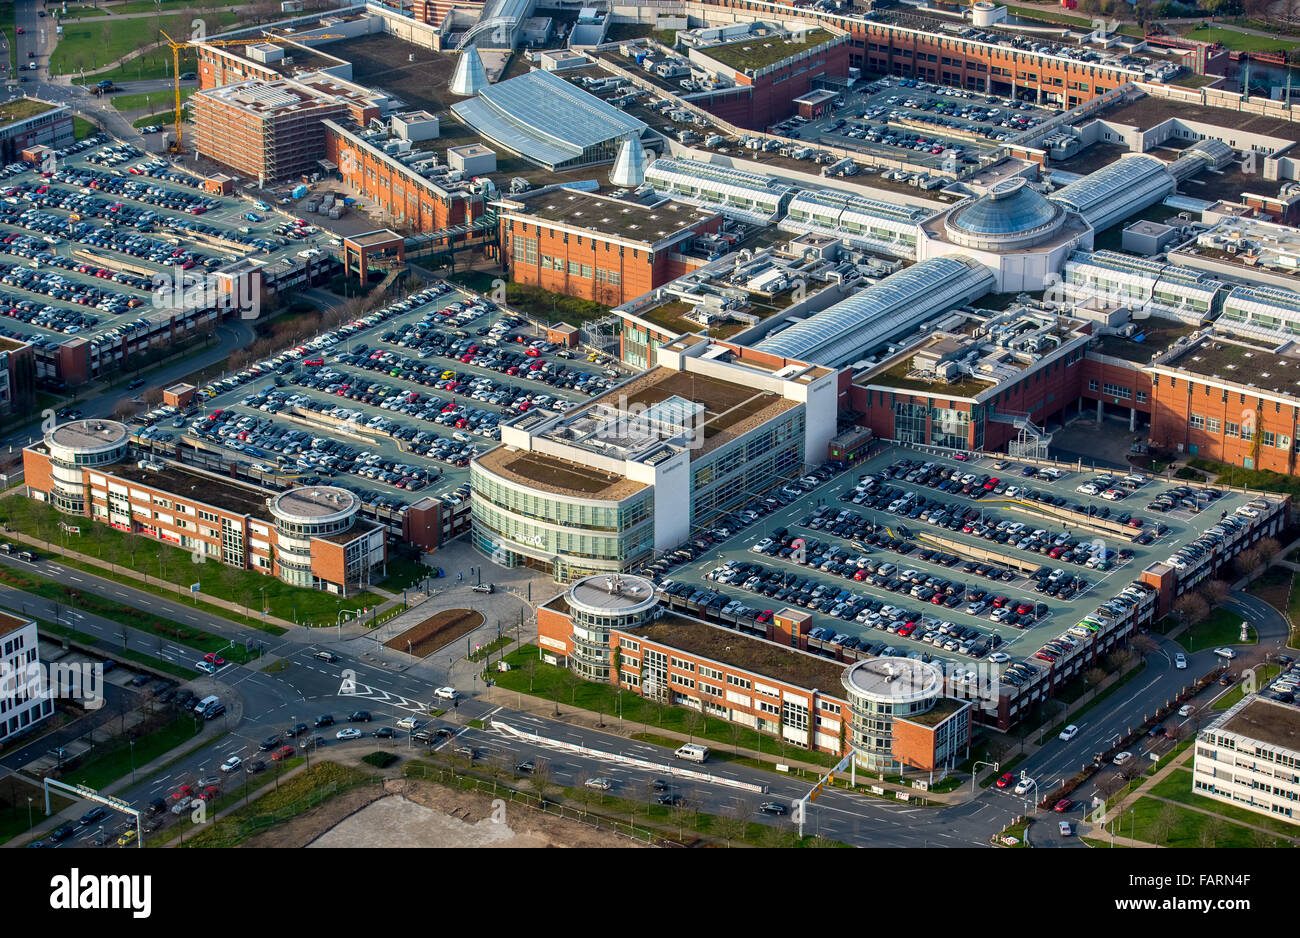 aerial view shopping mall centro oberhausen shopping mall largest stock photo 92719887 alamy. Black Bedroom Furniture Sets. Home Design Ideas